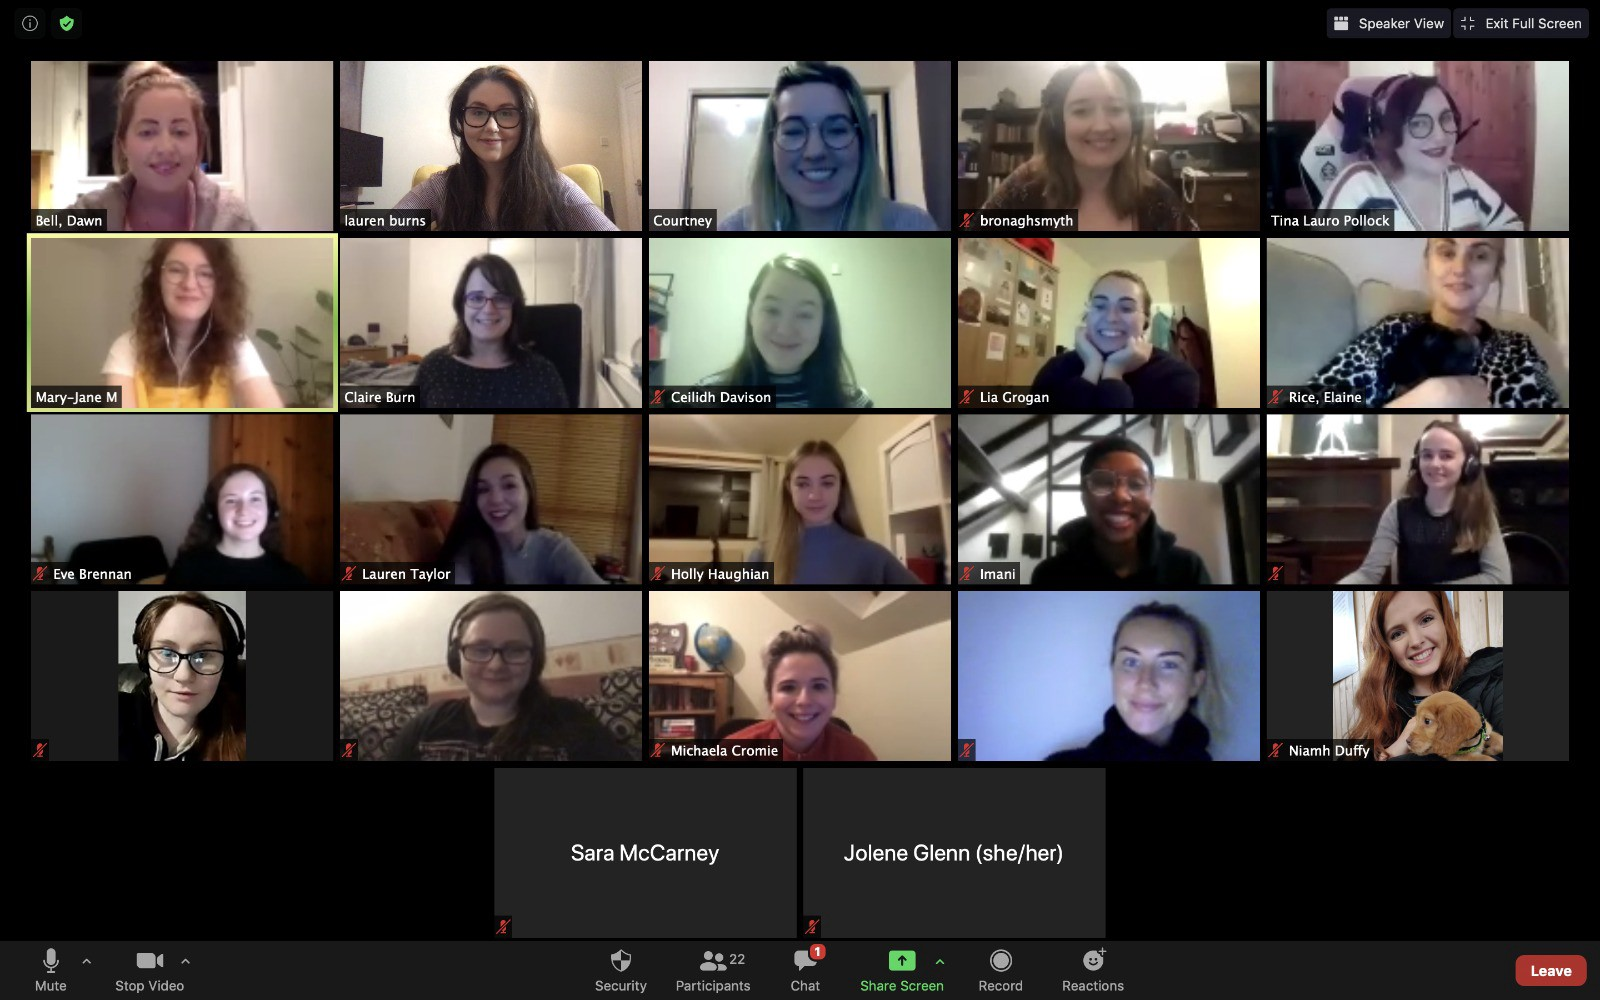 Zoom video call screenshot of women in the technology industry smiling at a digital meet-up